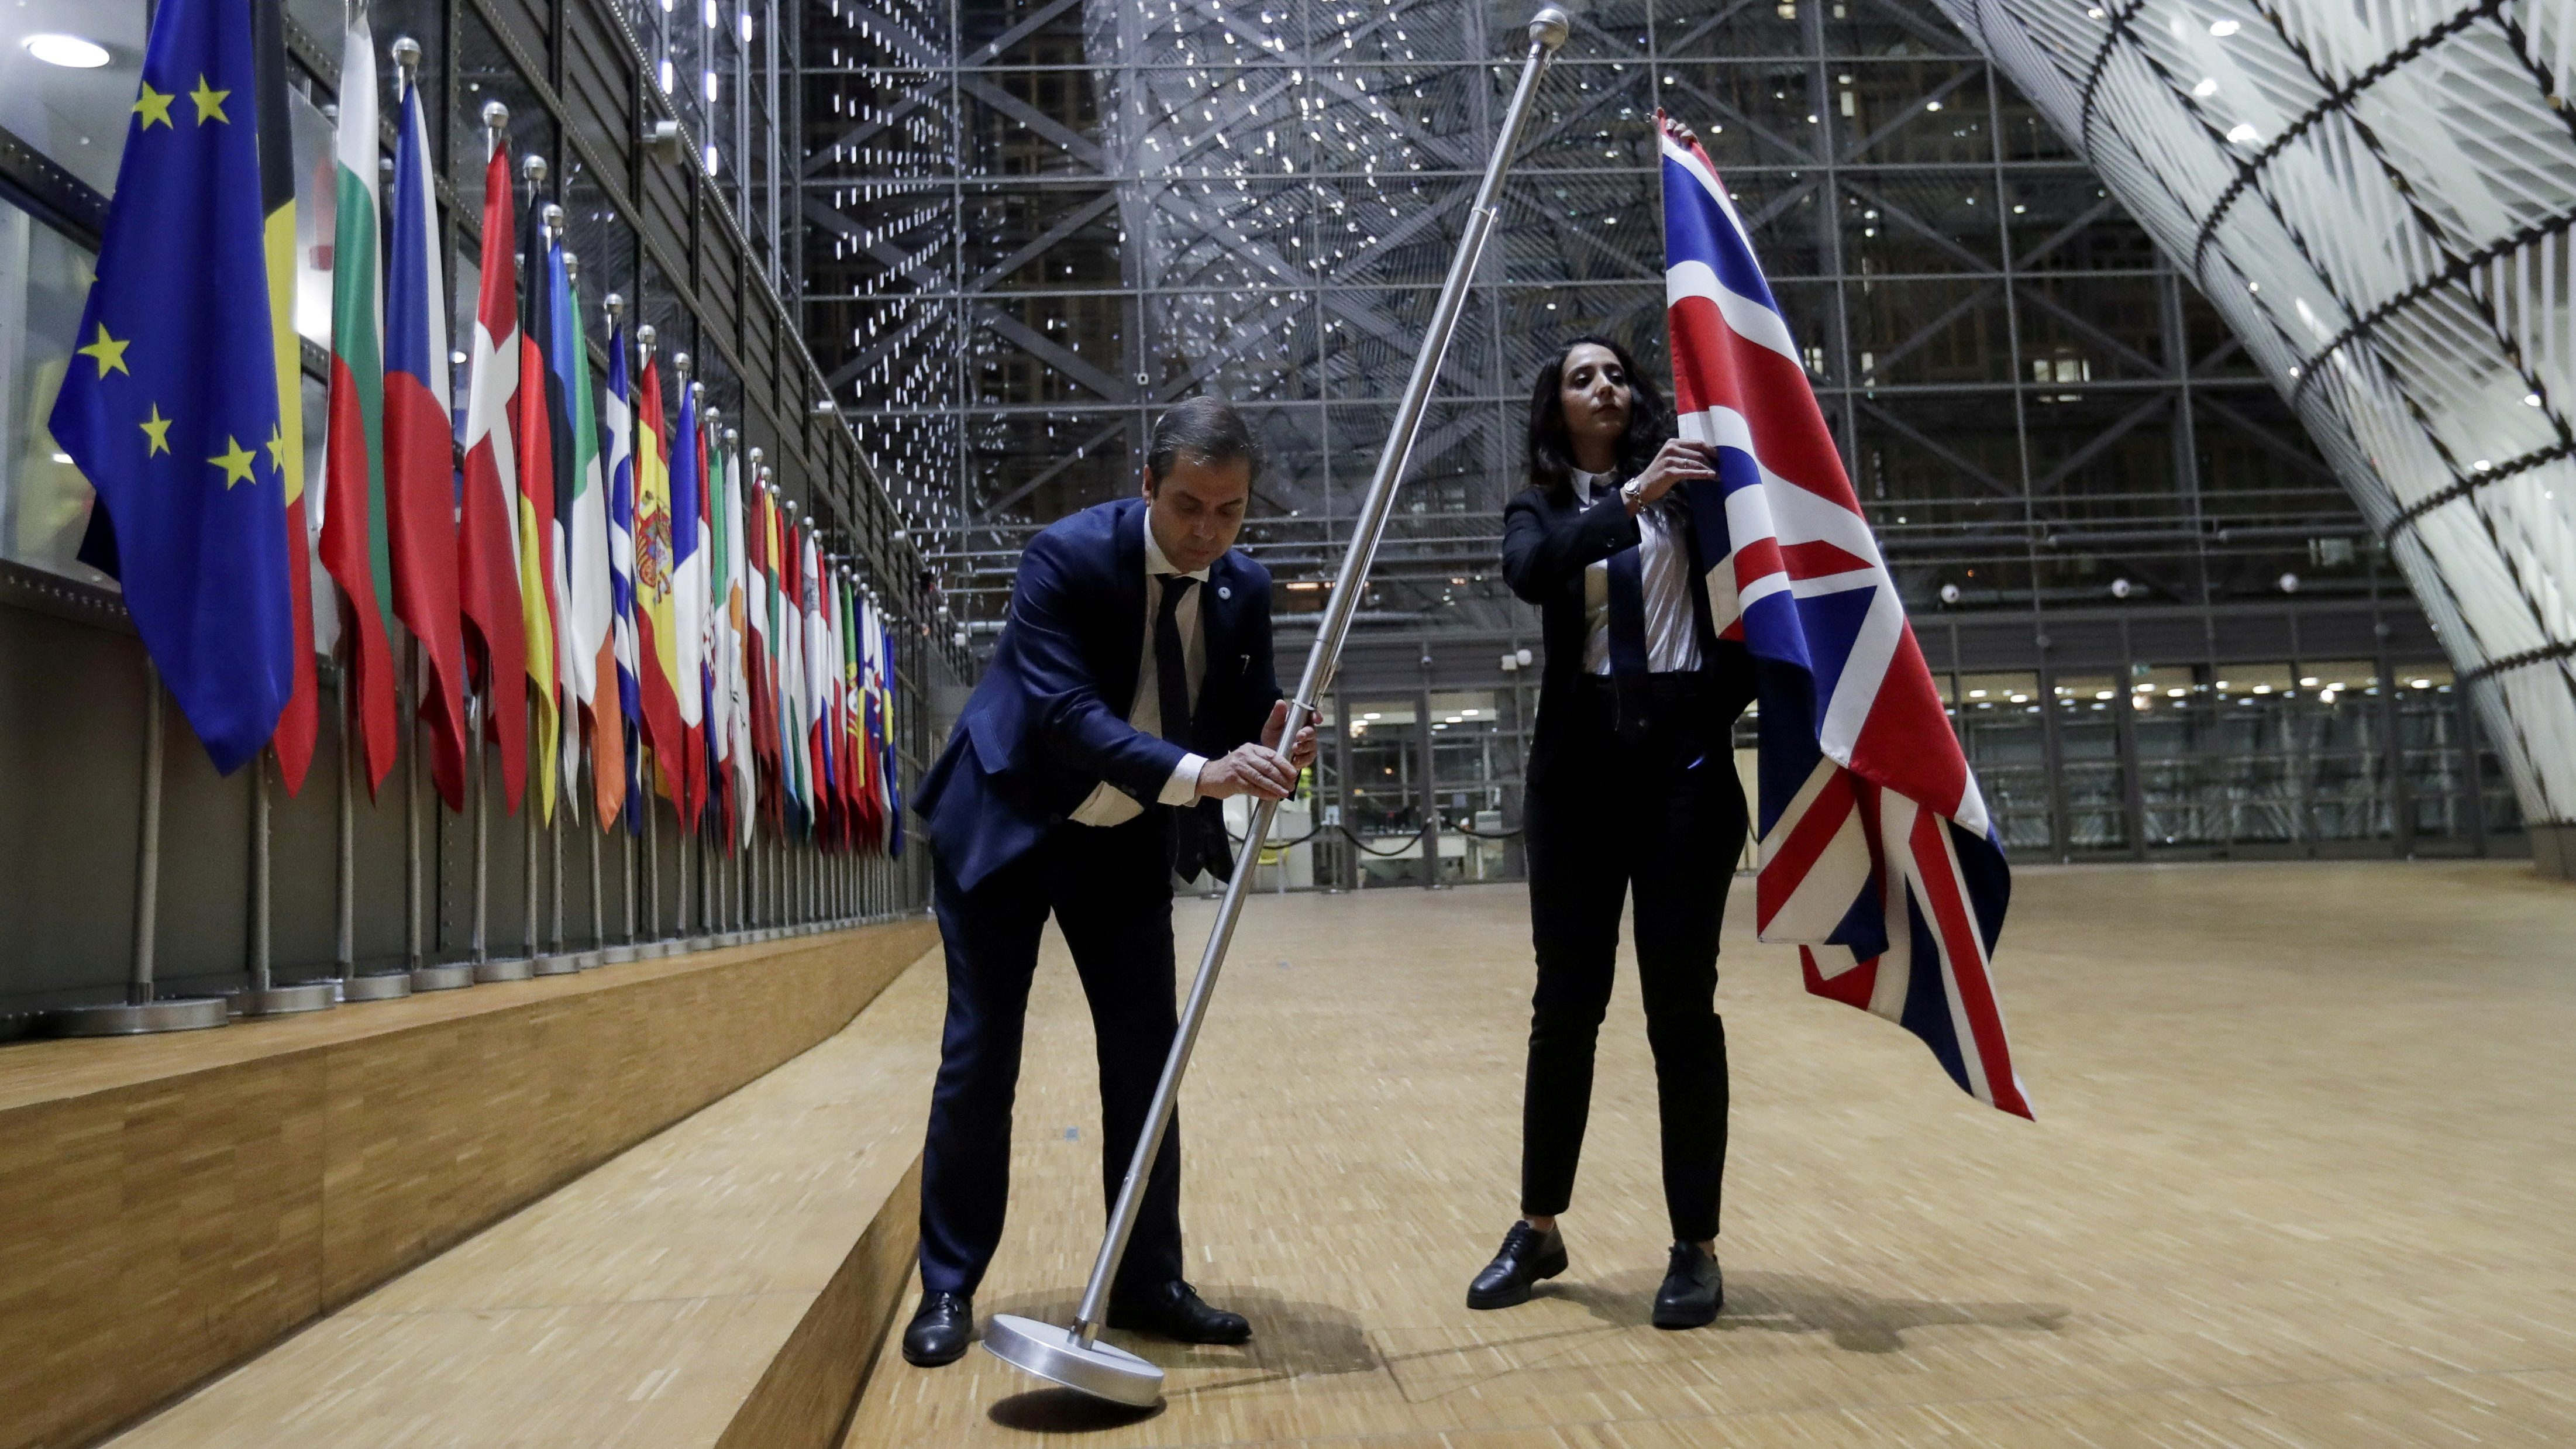 Officials remove the British flag at EU Council in Brussels